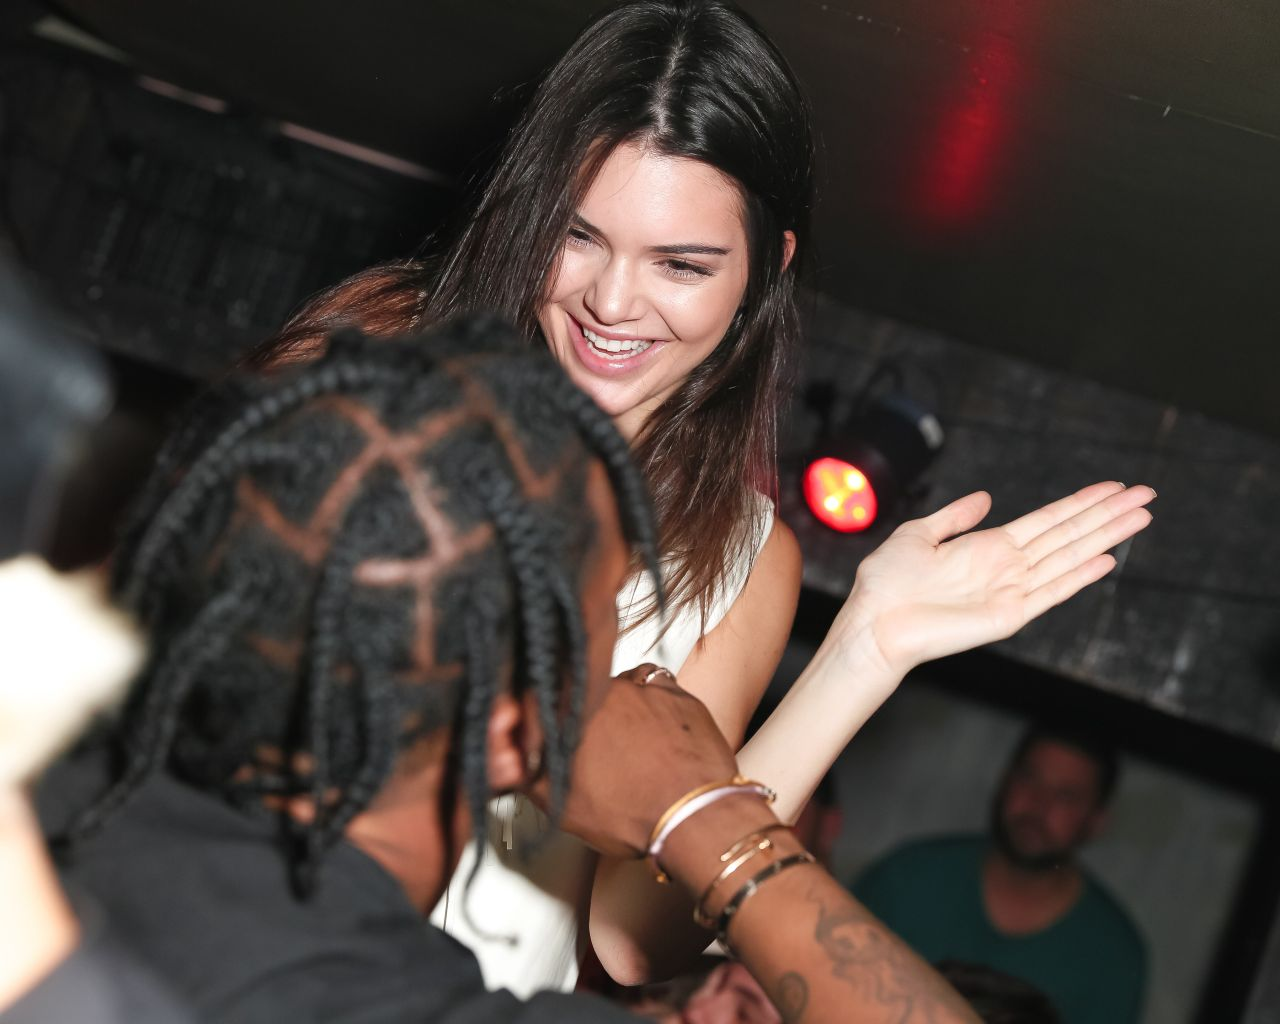 kendall-jenner-travis-scott-rodeo-listening-party-in-new-york-city_9